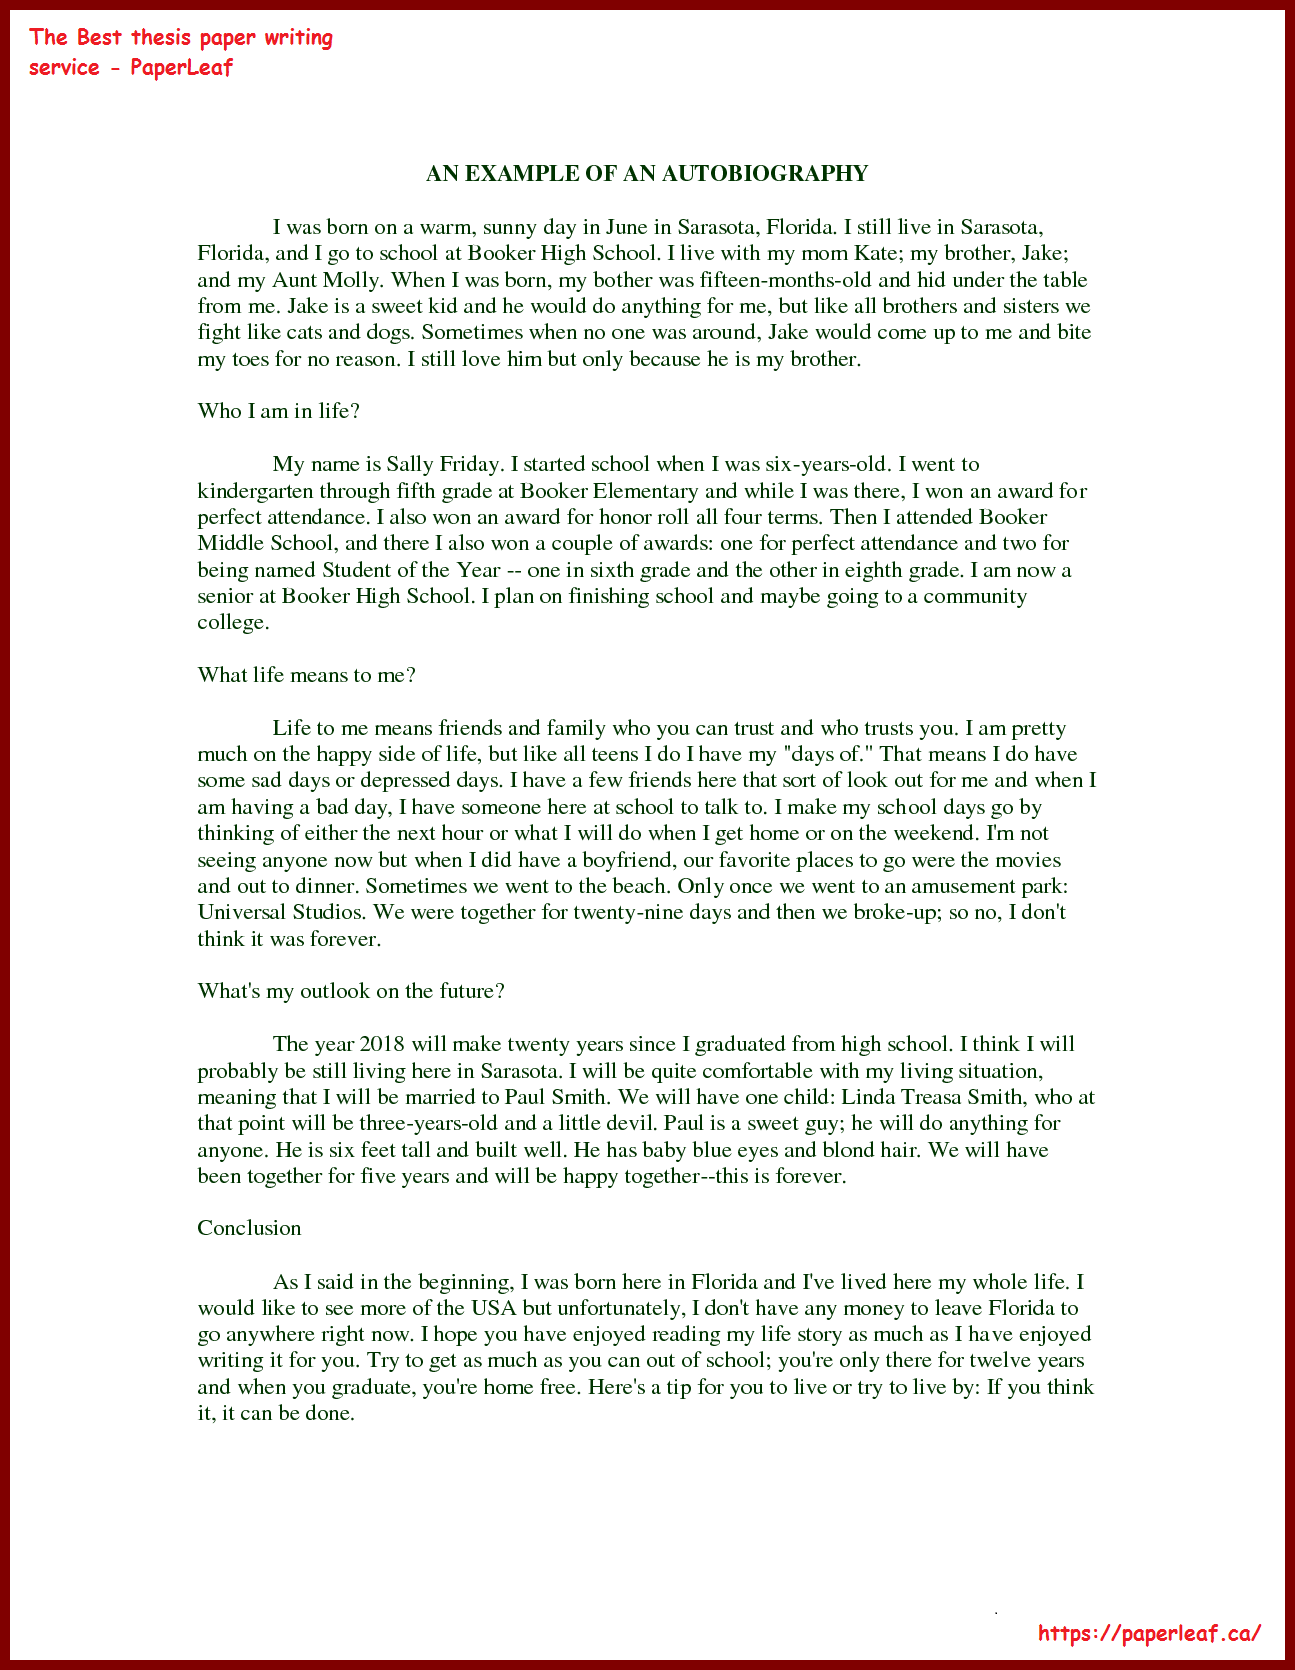 Do My English Homework Online Get Help With Autobiography Writing Paper Service Essay On